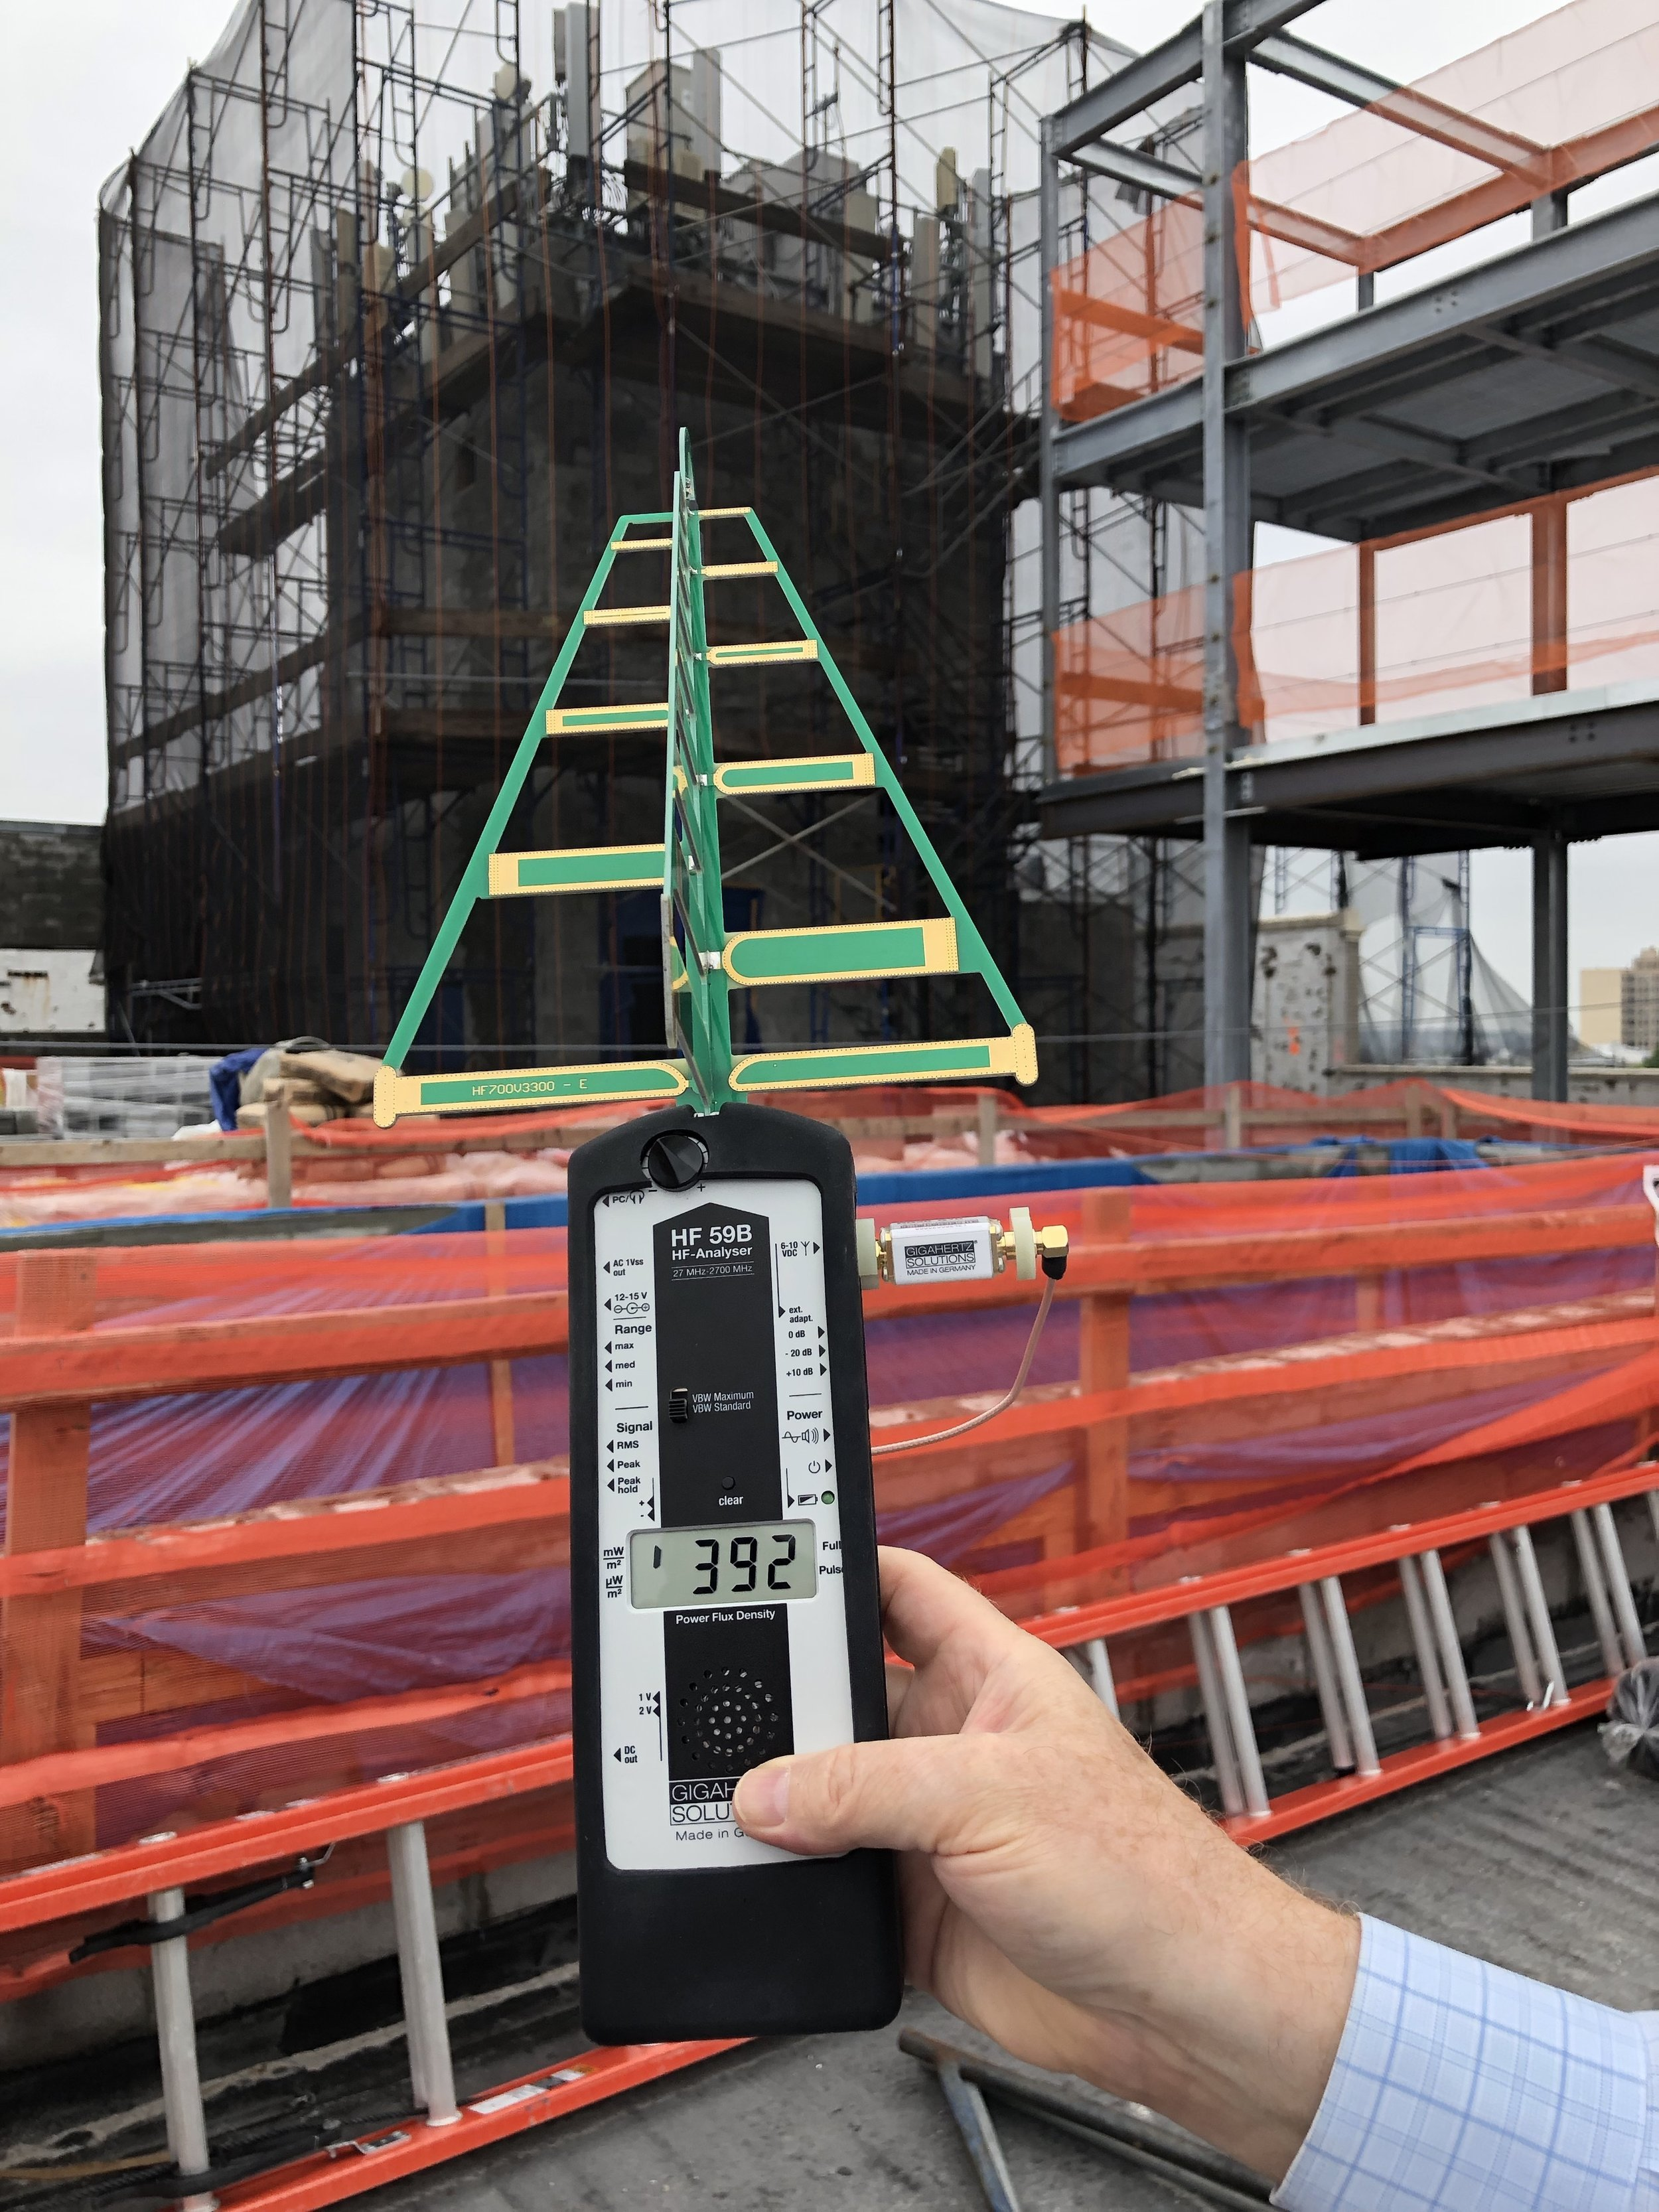 An Industrial RF Survey: There is a transmitter array at a construction site near the Grand Army Plaza, Brooklyn, NY.  392 mW/m2 ≈ 392,000 µW/m2